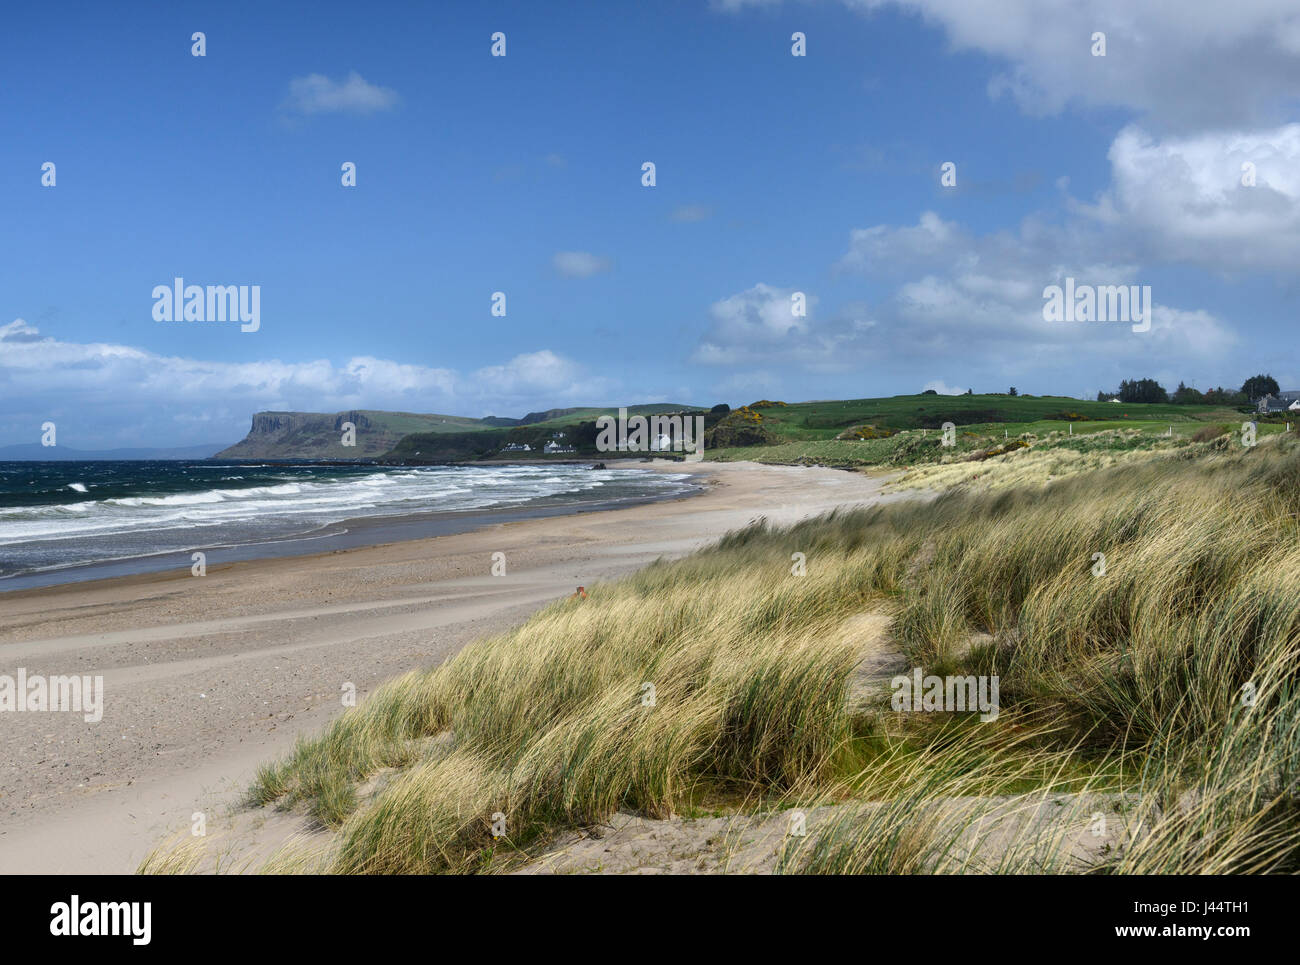 The shoreline at Ballycastle on the Causeway coast of County Antrim in Northern Ireland - Stock Image